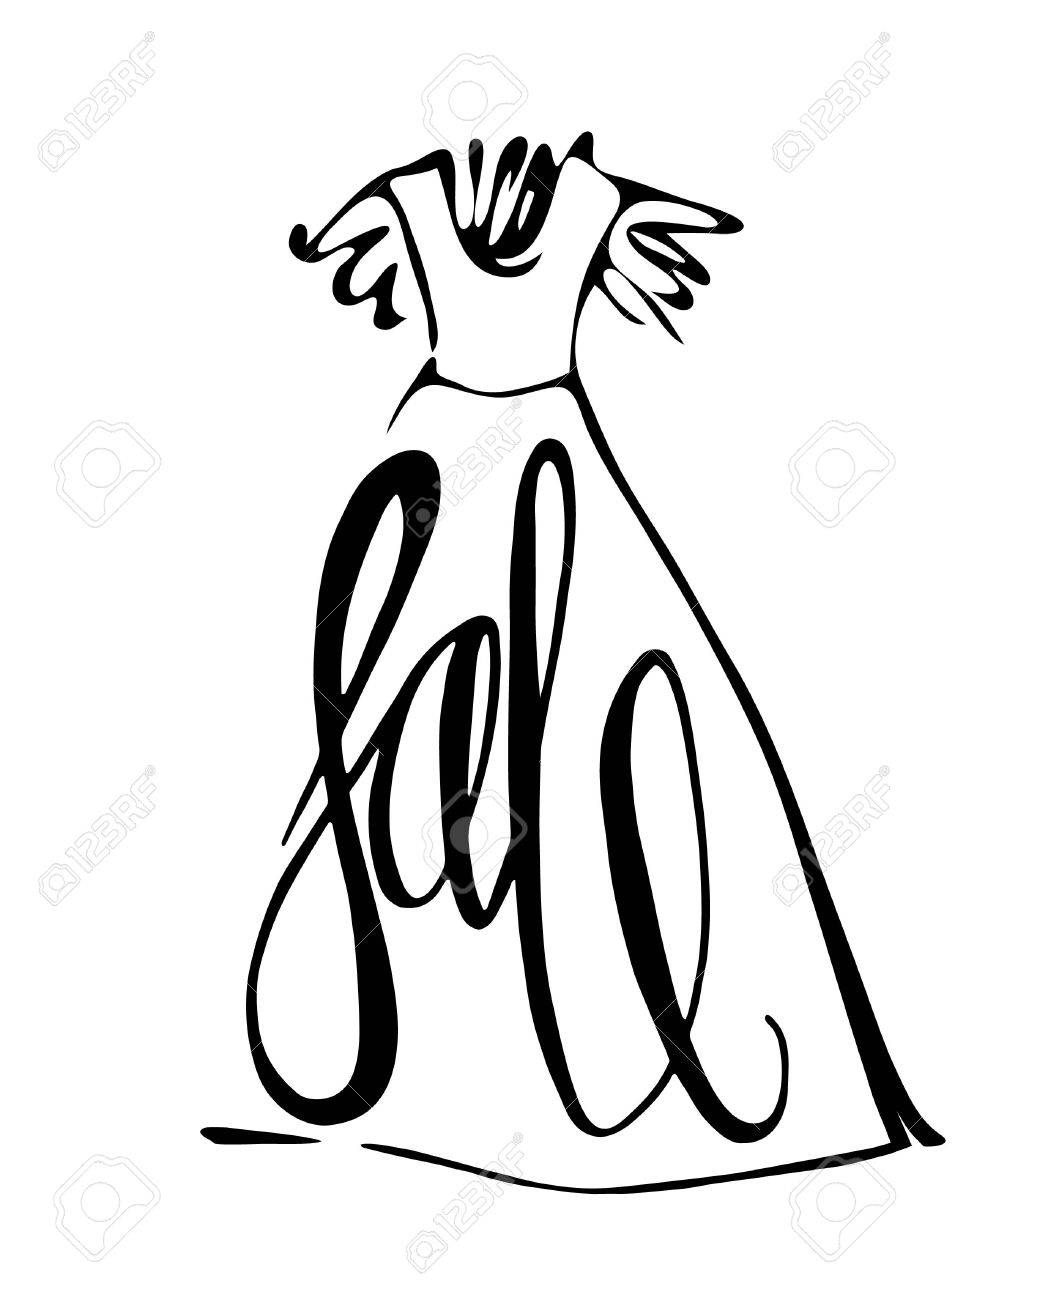 Fashion Design Vector Illustration Hand Drawn Woman Dress Isolated Royalty Free Cliparts Vectors And Stock Illustration Image 52506922